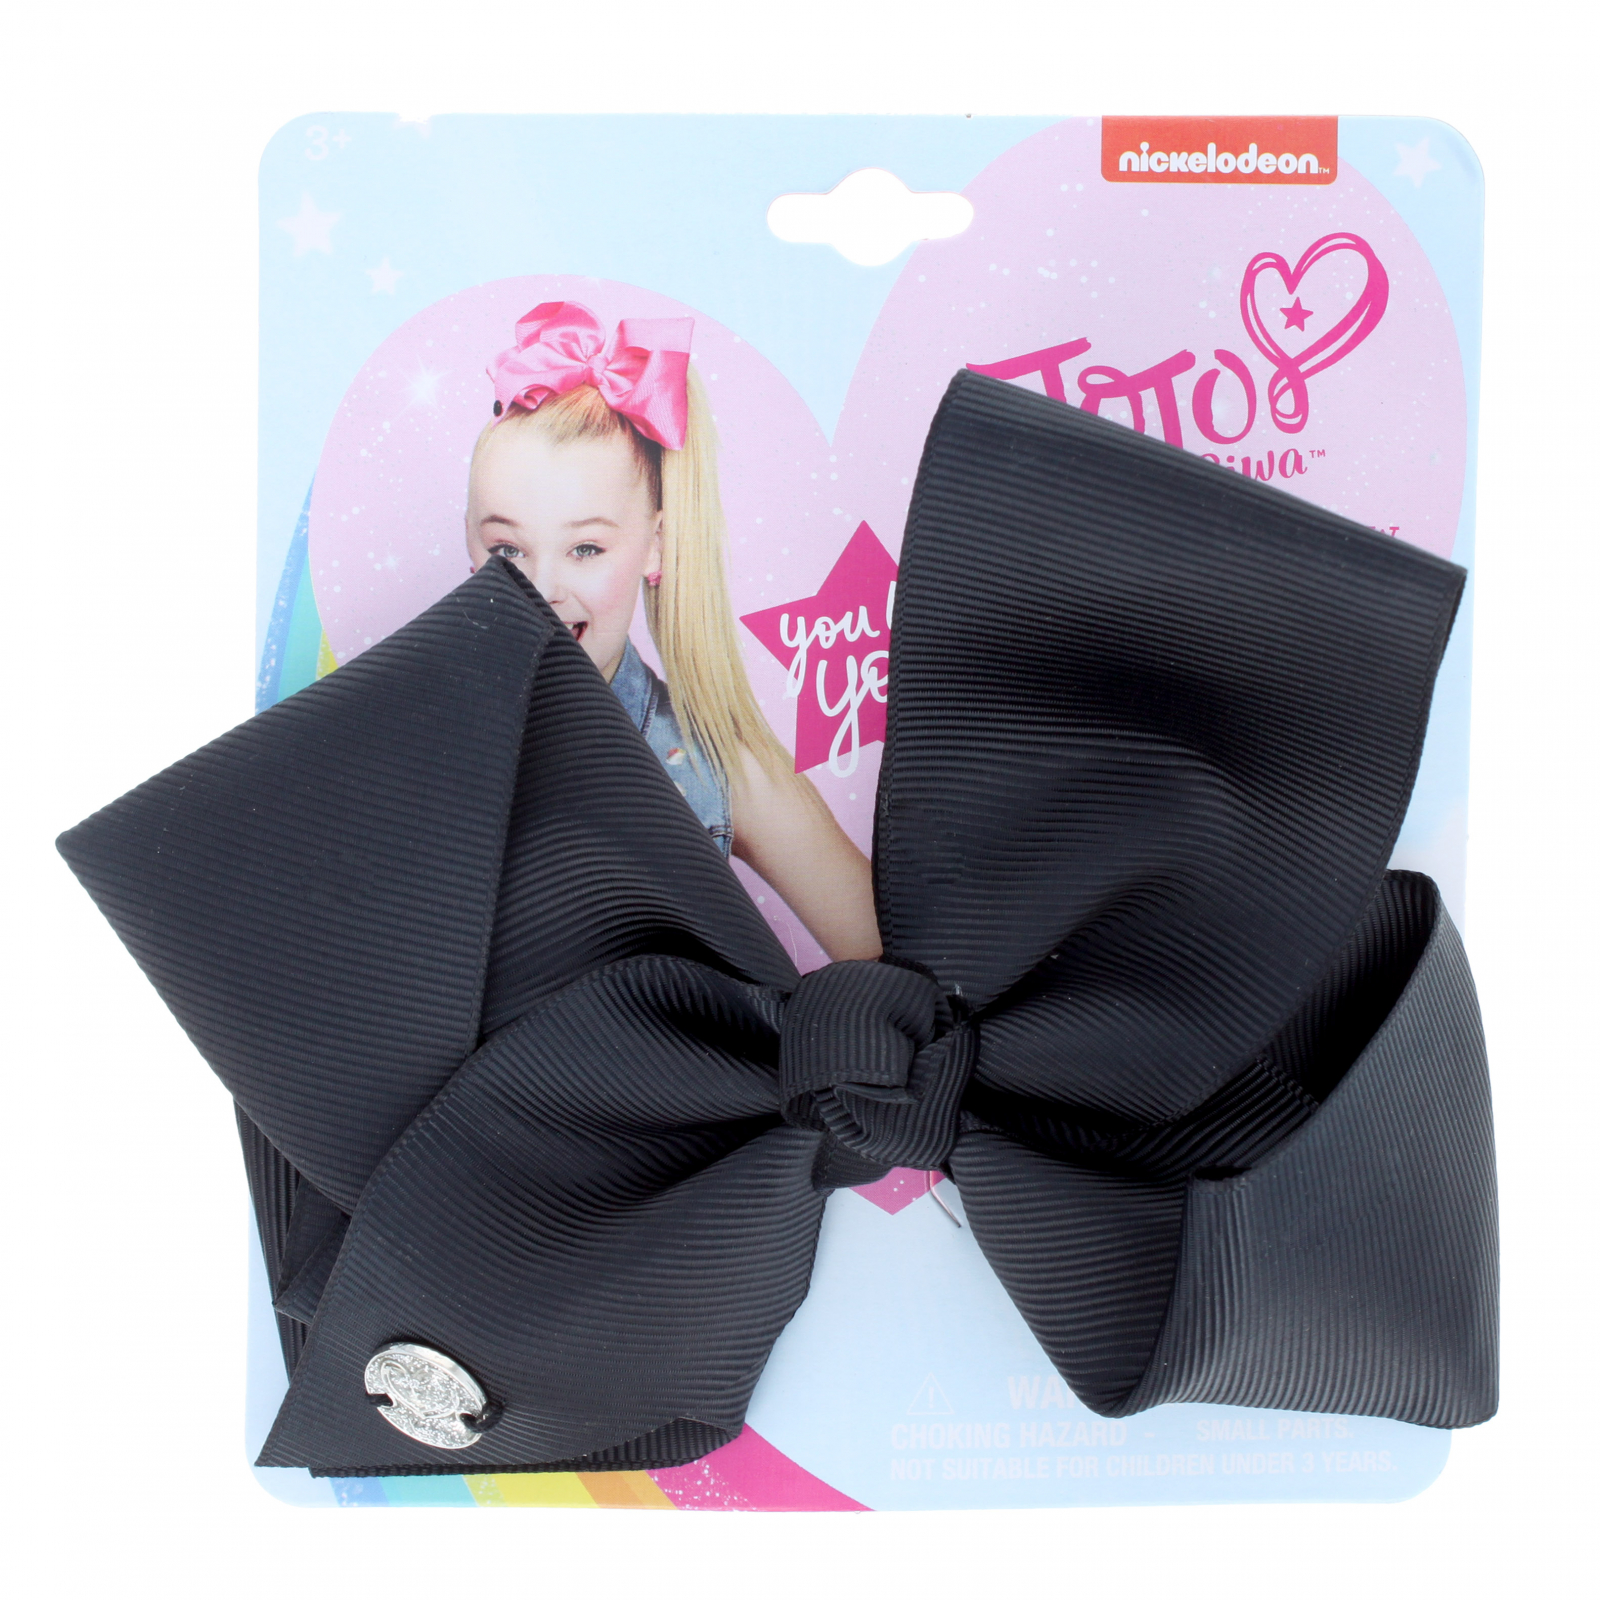 Nickelodeon Jojo Siwa Black Hair Bow Hair Clip